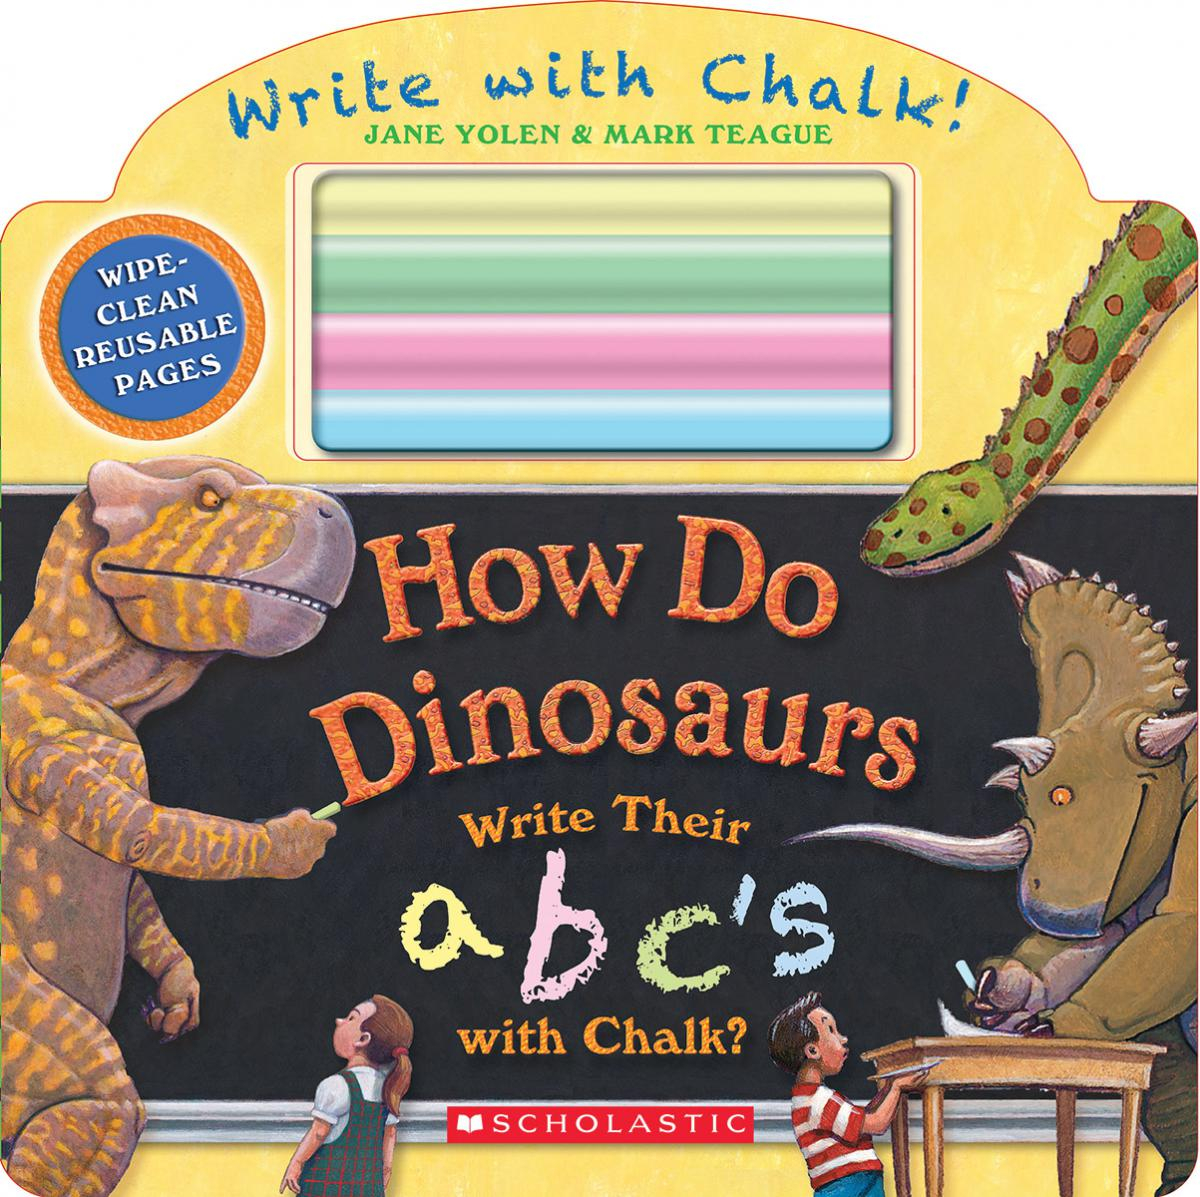 How Do Dinosaurs Write Their ABC's?